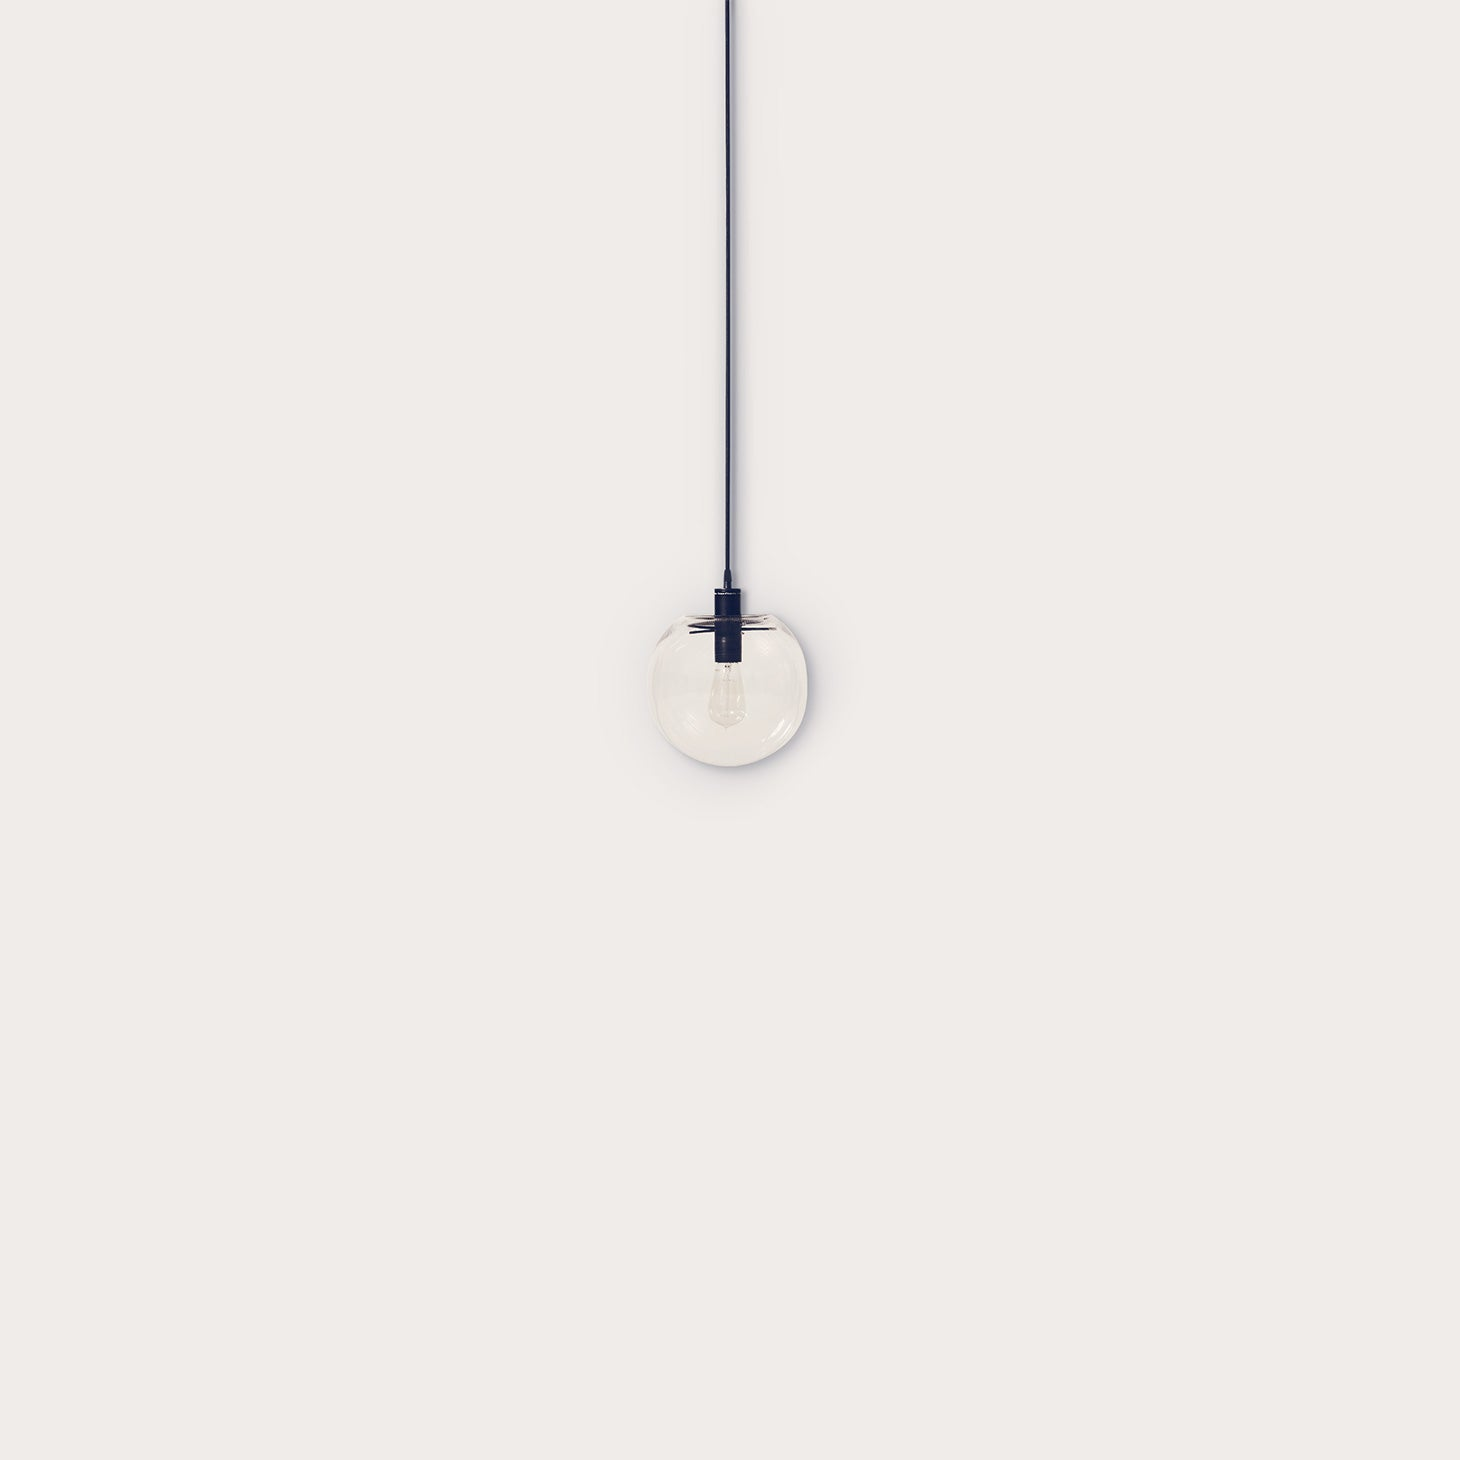 Selene Lighting Sandra Lindner Designer Furniture Sku: 001-160-10084